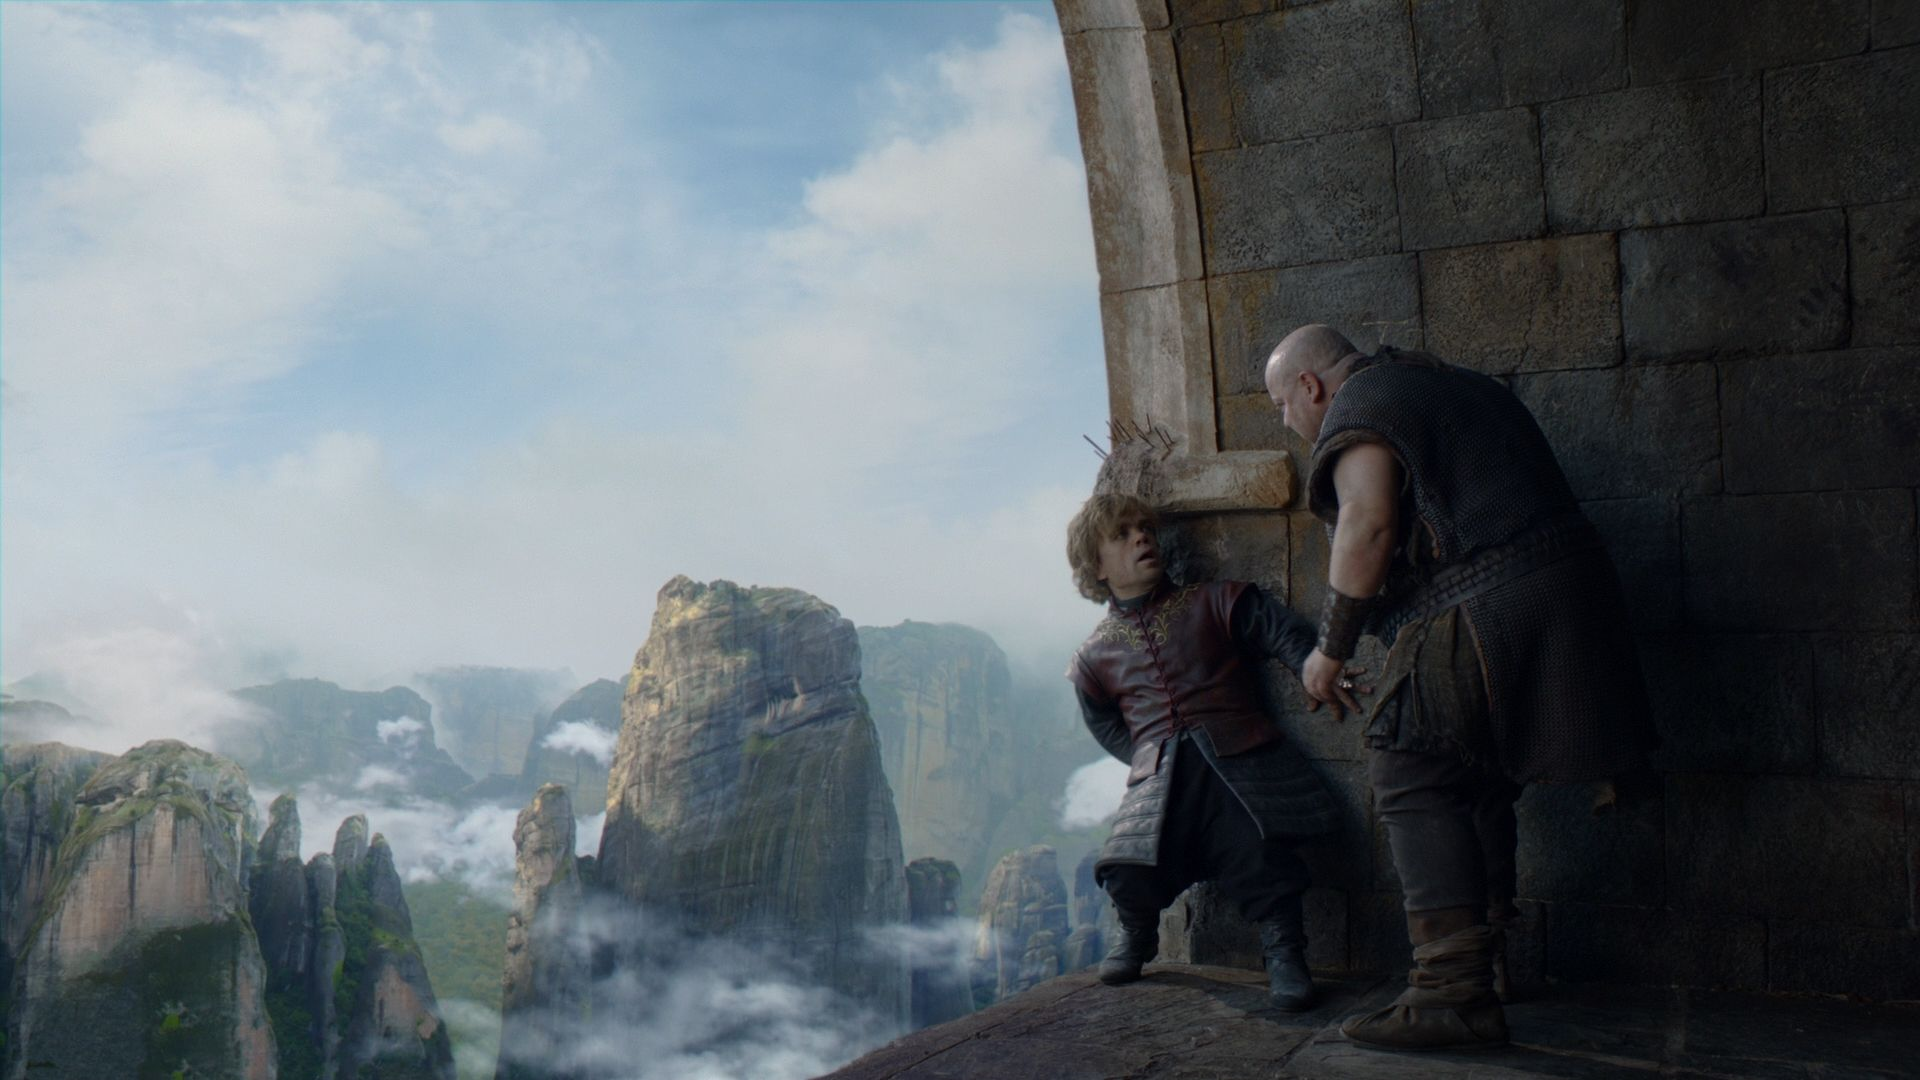 Game of Thrones landscape image